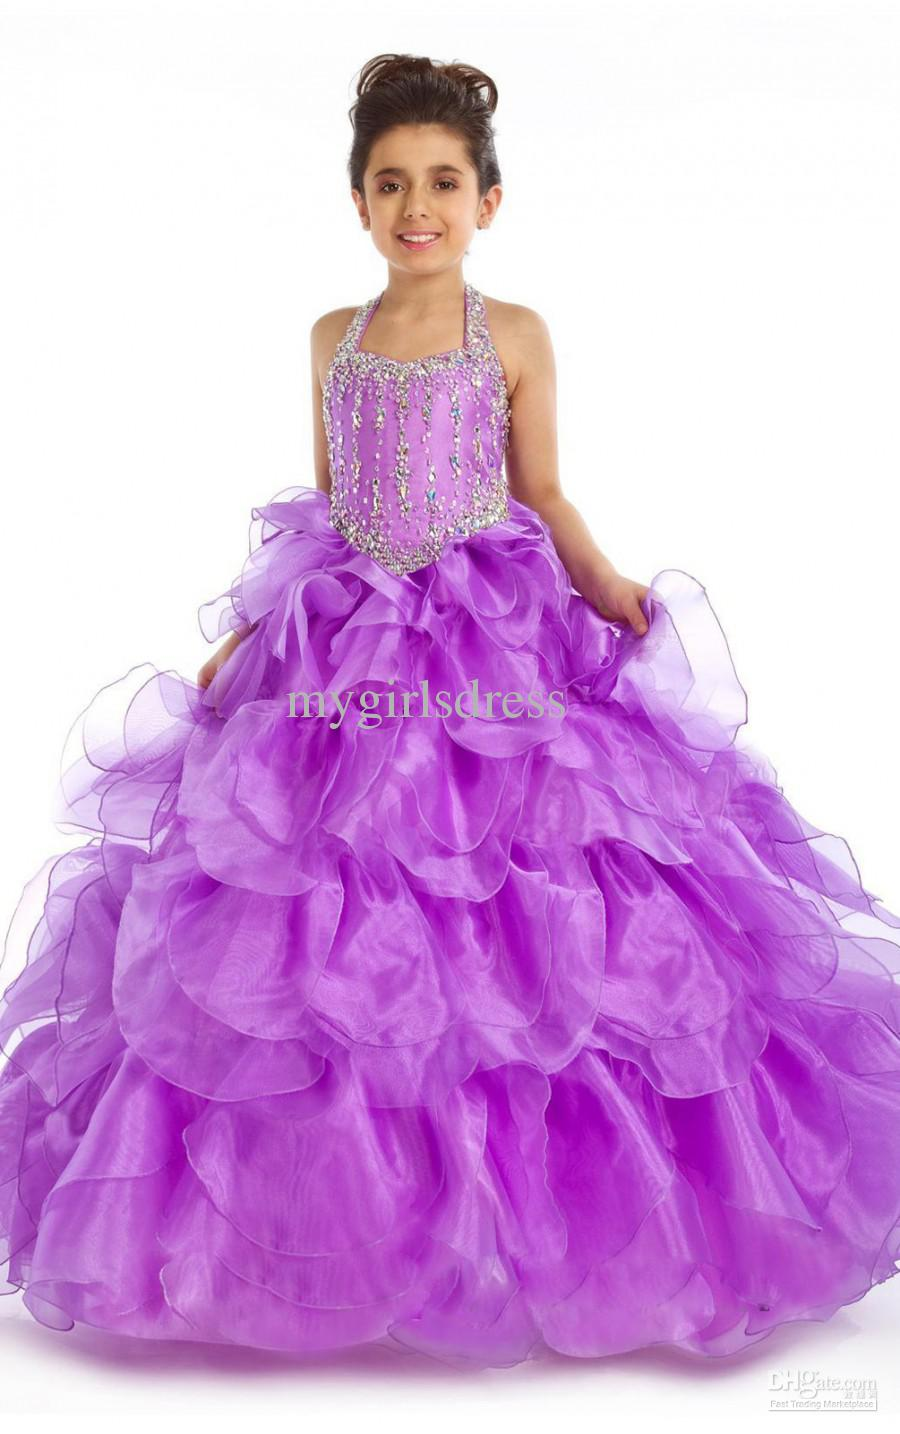 New Girl Kids Pageant Bridesmaid Dance Party Princess Ball Gown ...